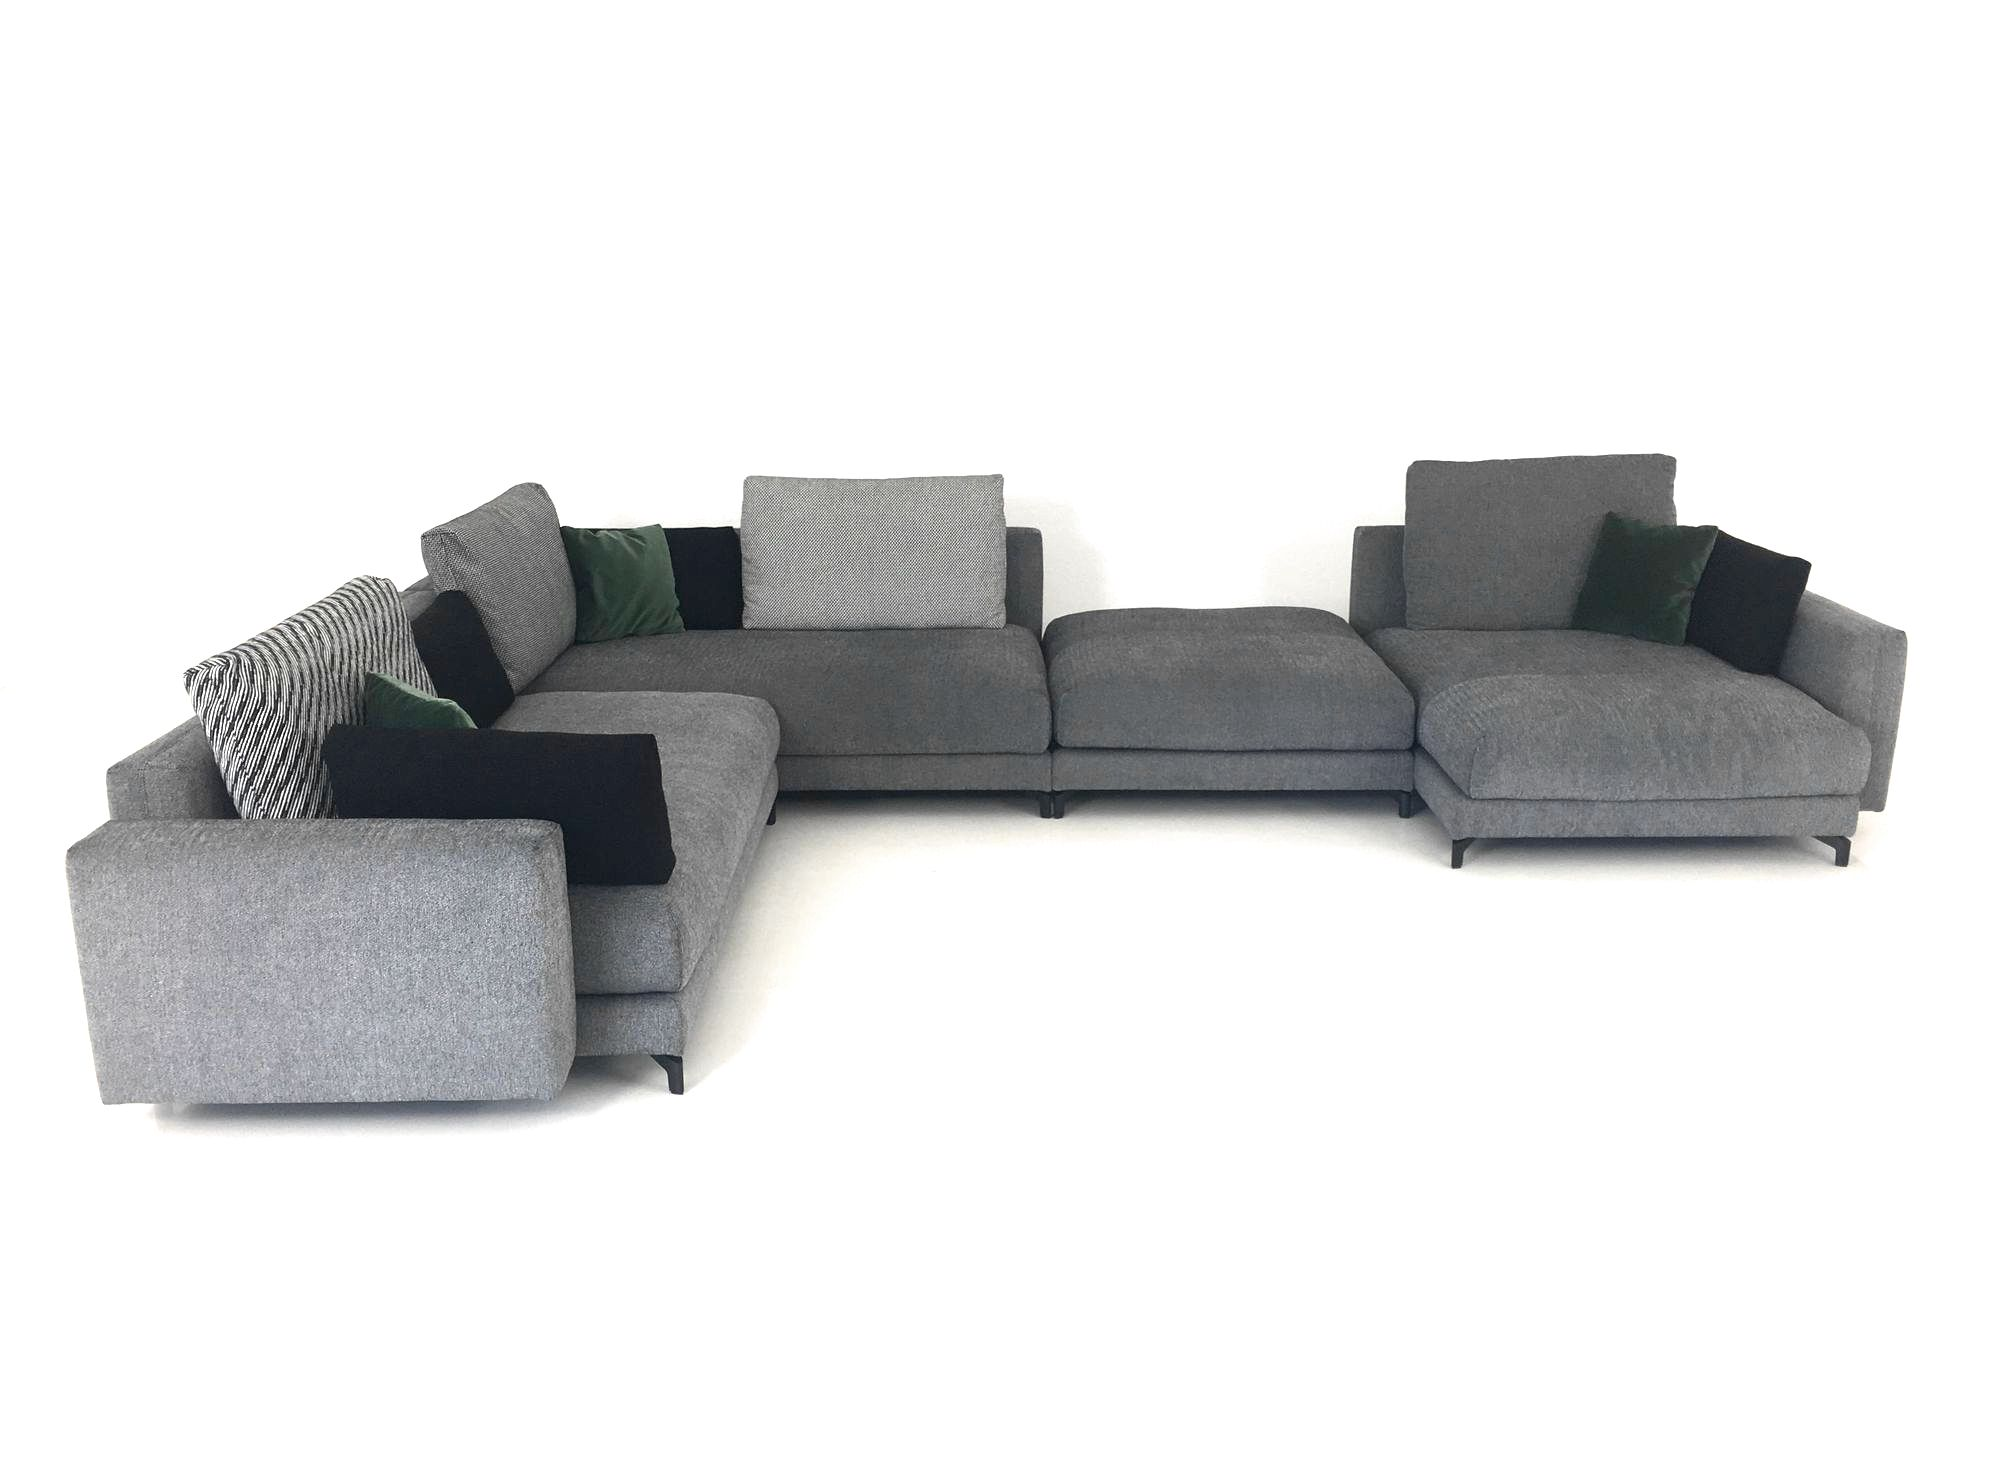 wohnlandschaften sofas outlet izabela k On ecksofa rolf benz outlet